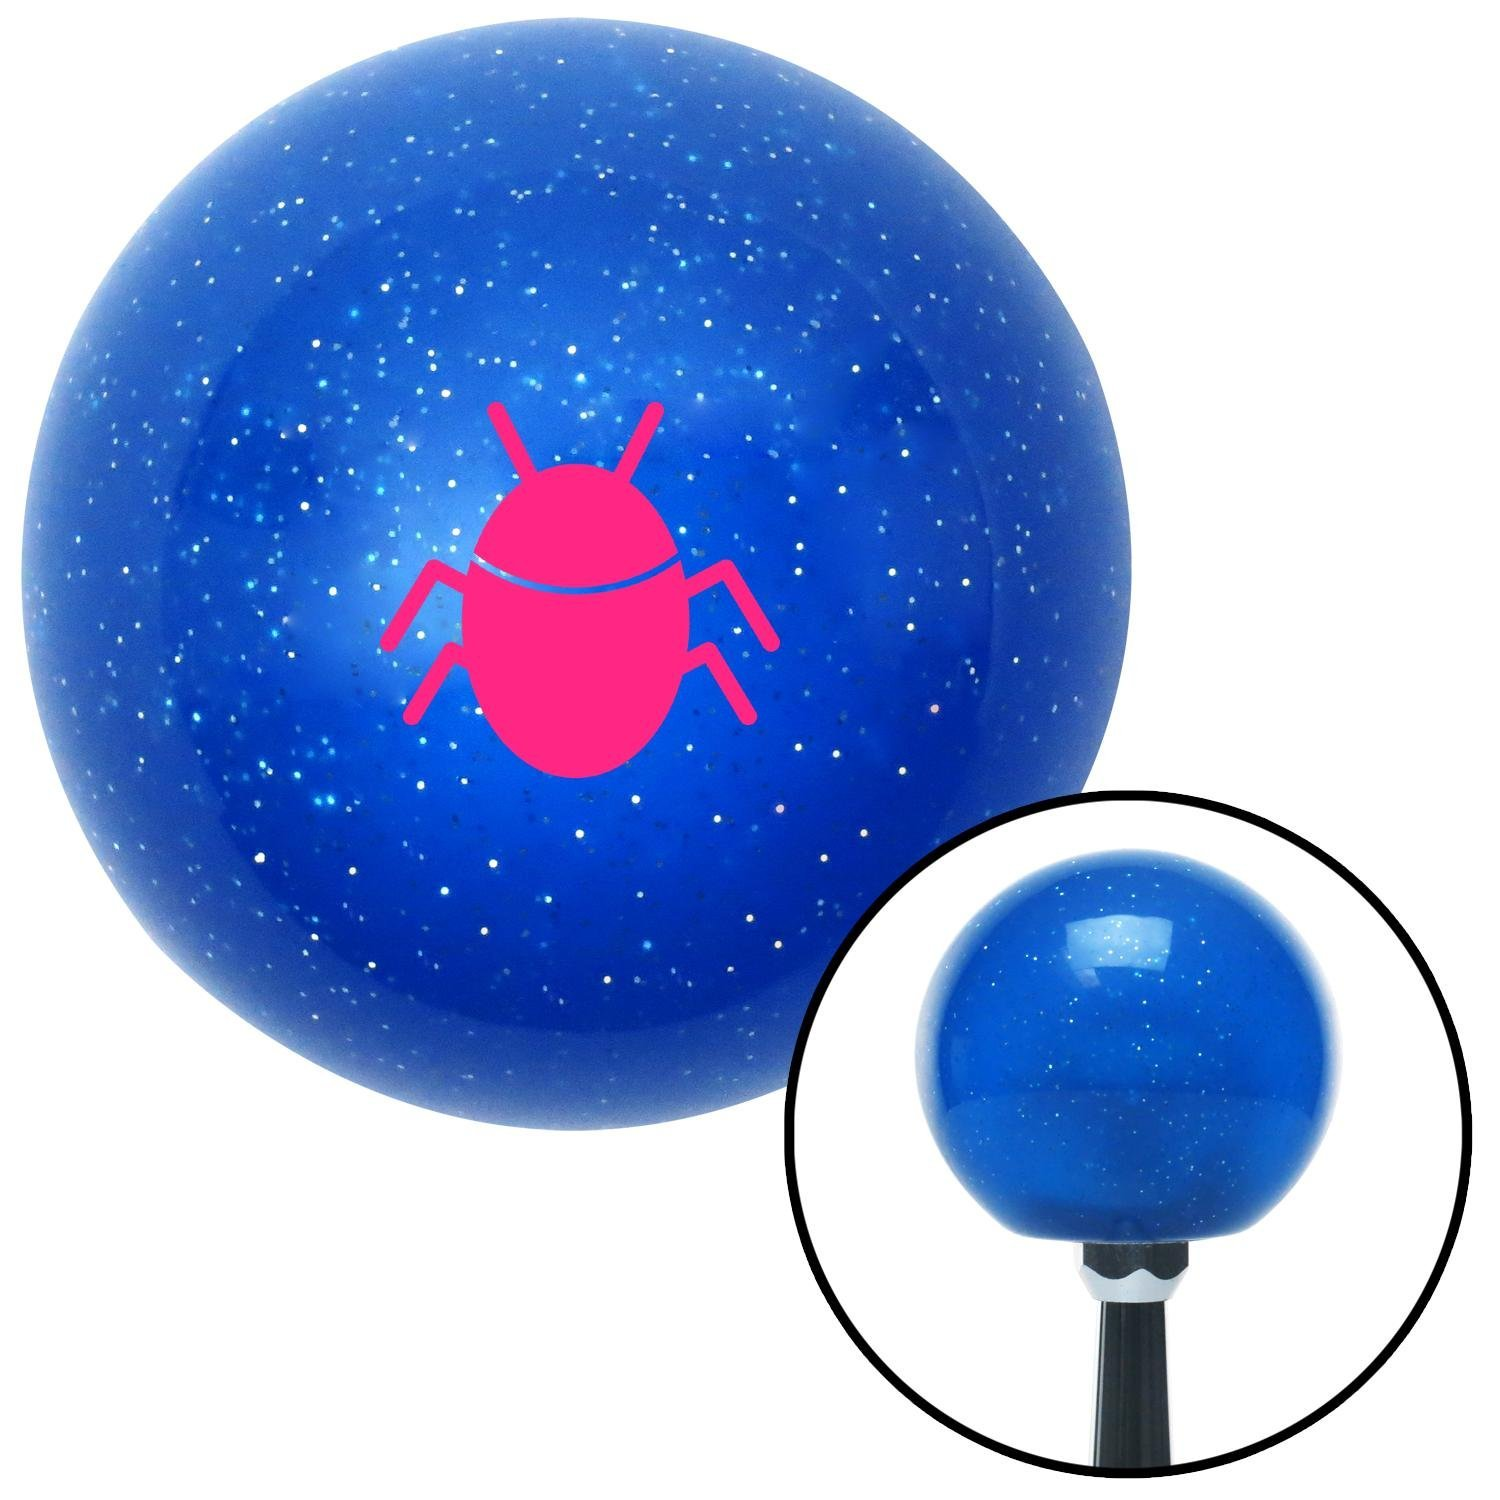 American Shifter 276029 Shift Knob Pink Bug Blue Metal Flake with M16 x 1.5 Insert